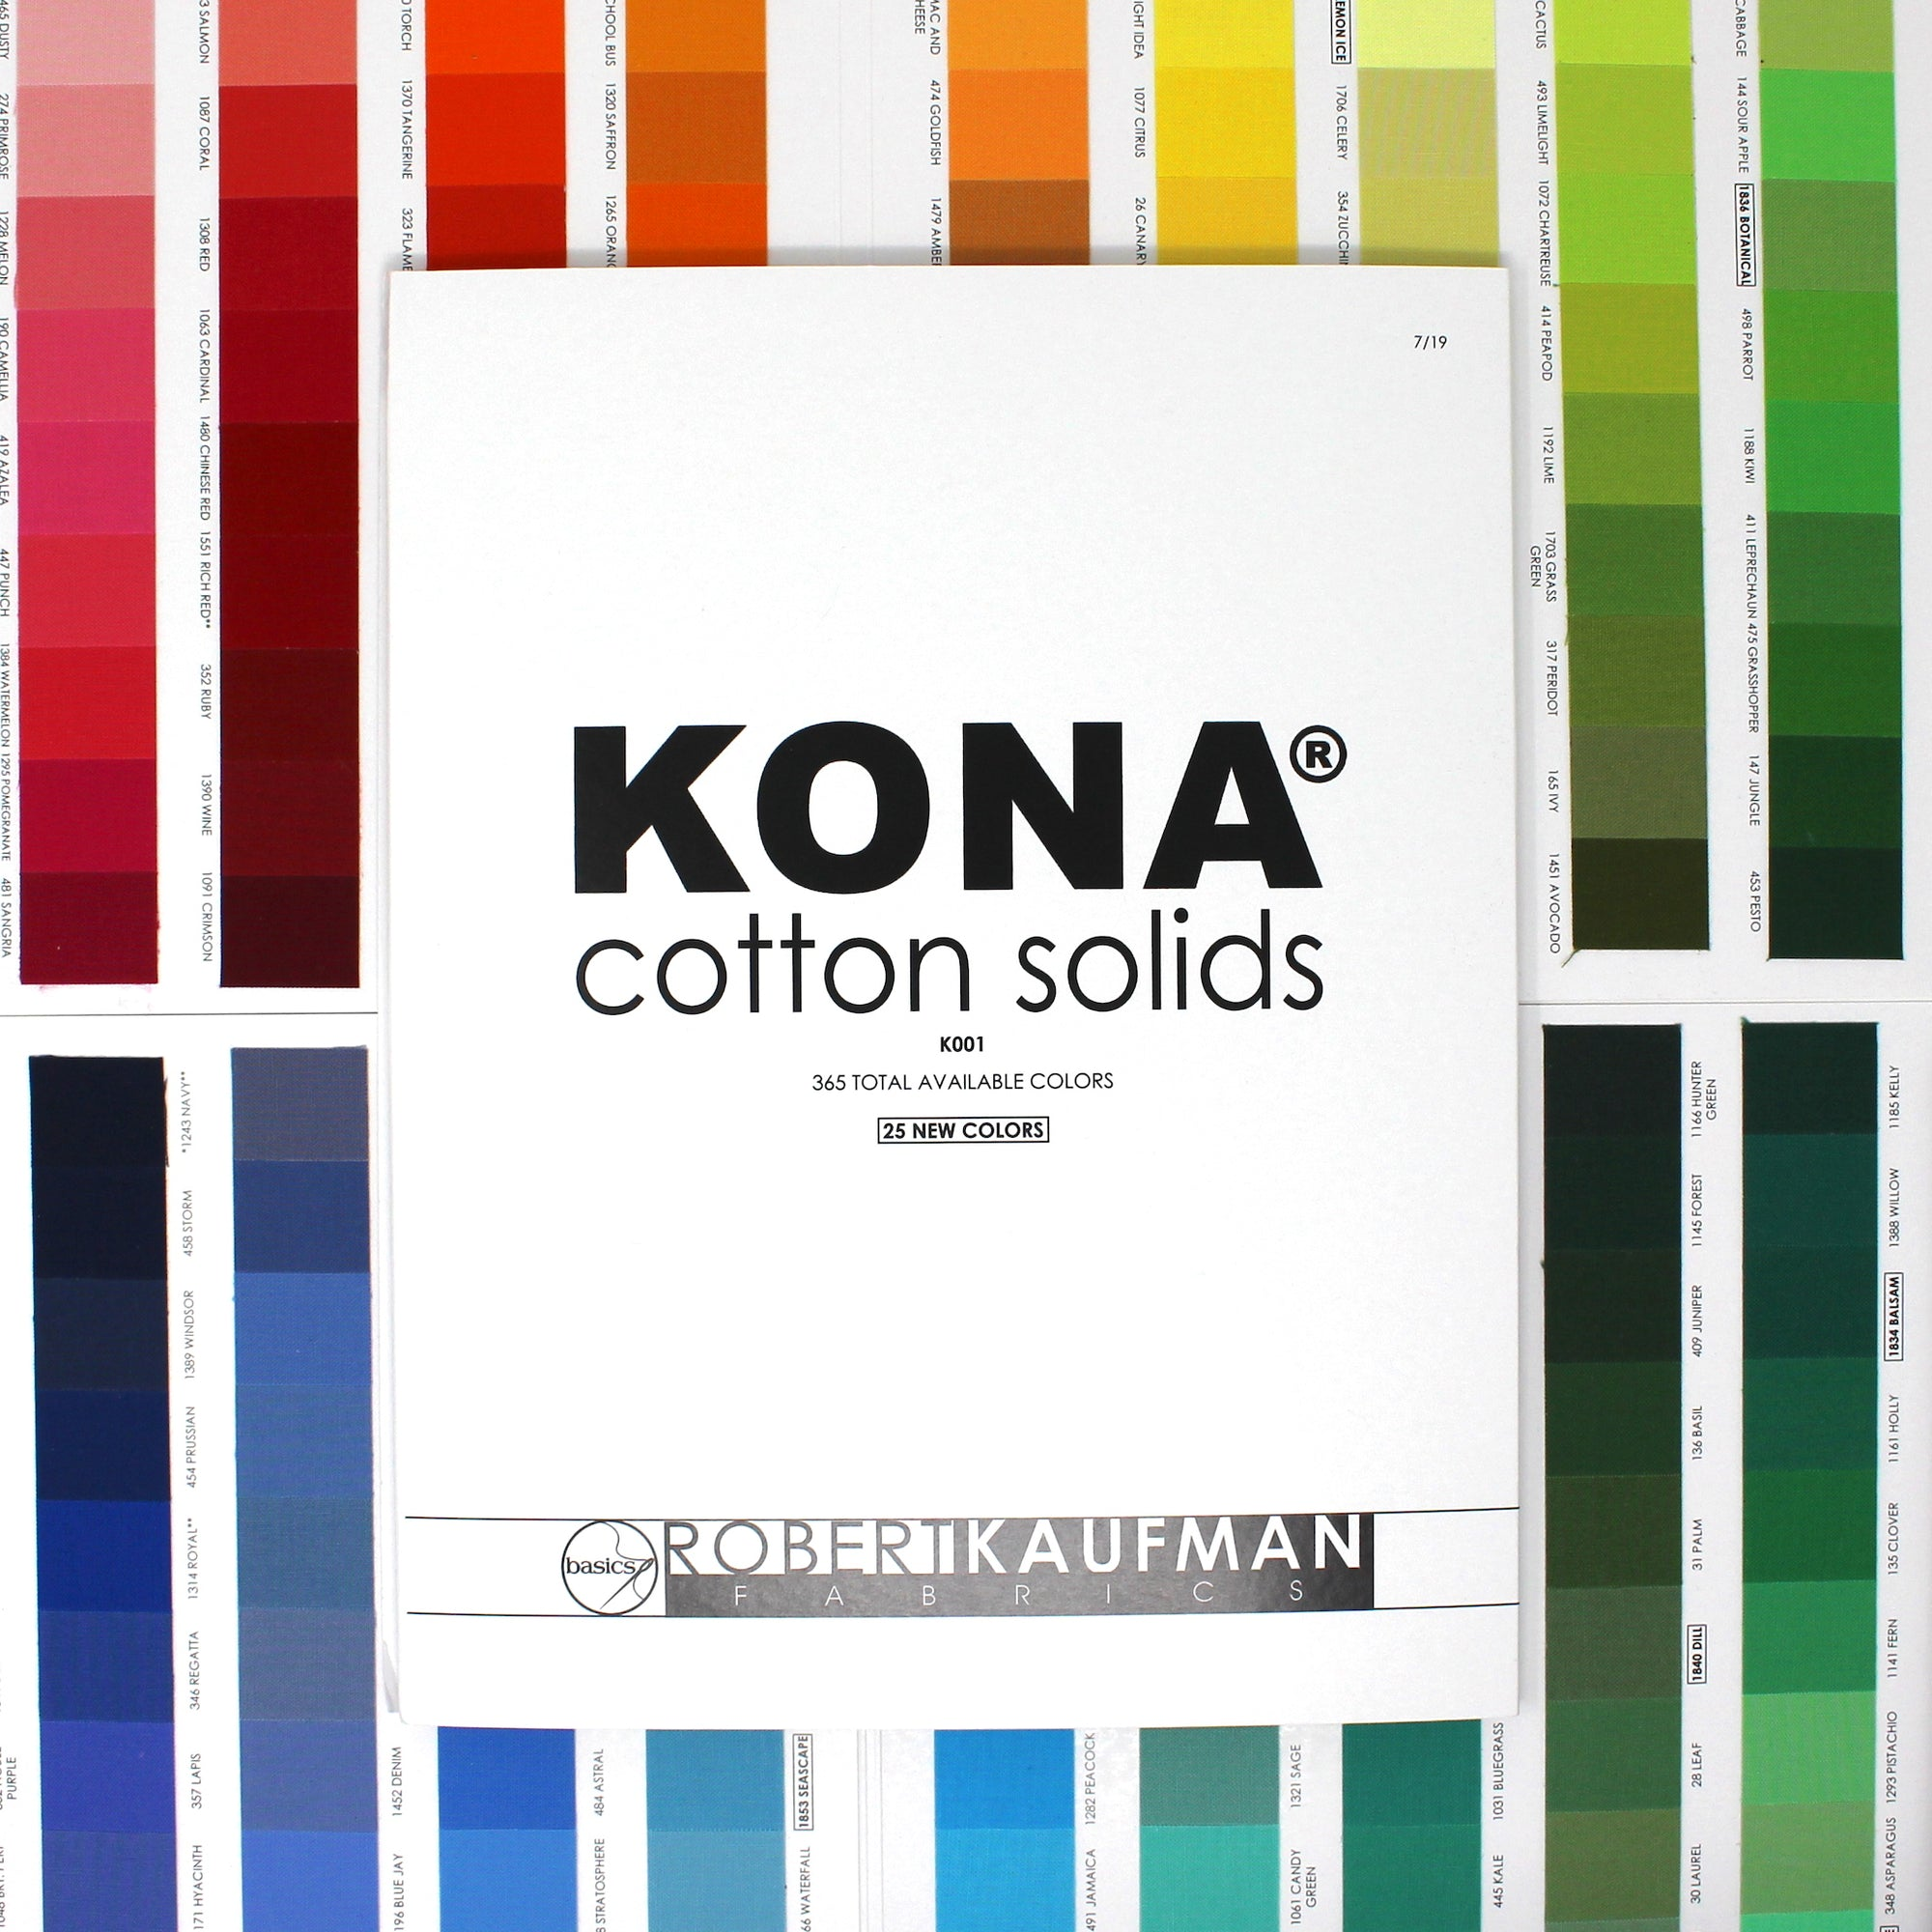 Kona Cotton Color Card - 365 Colors